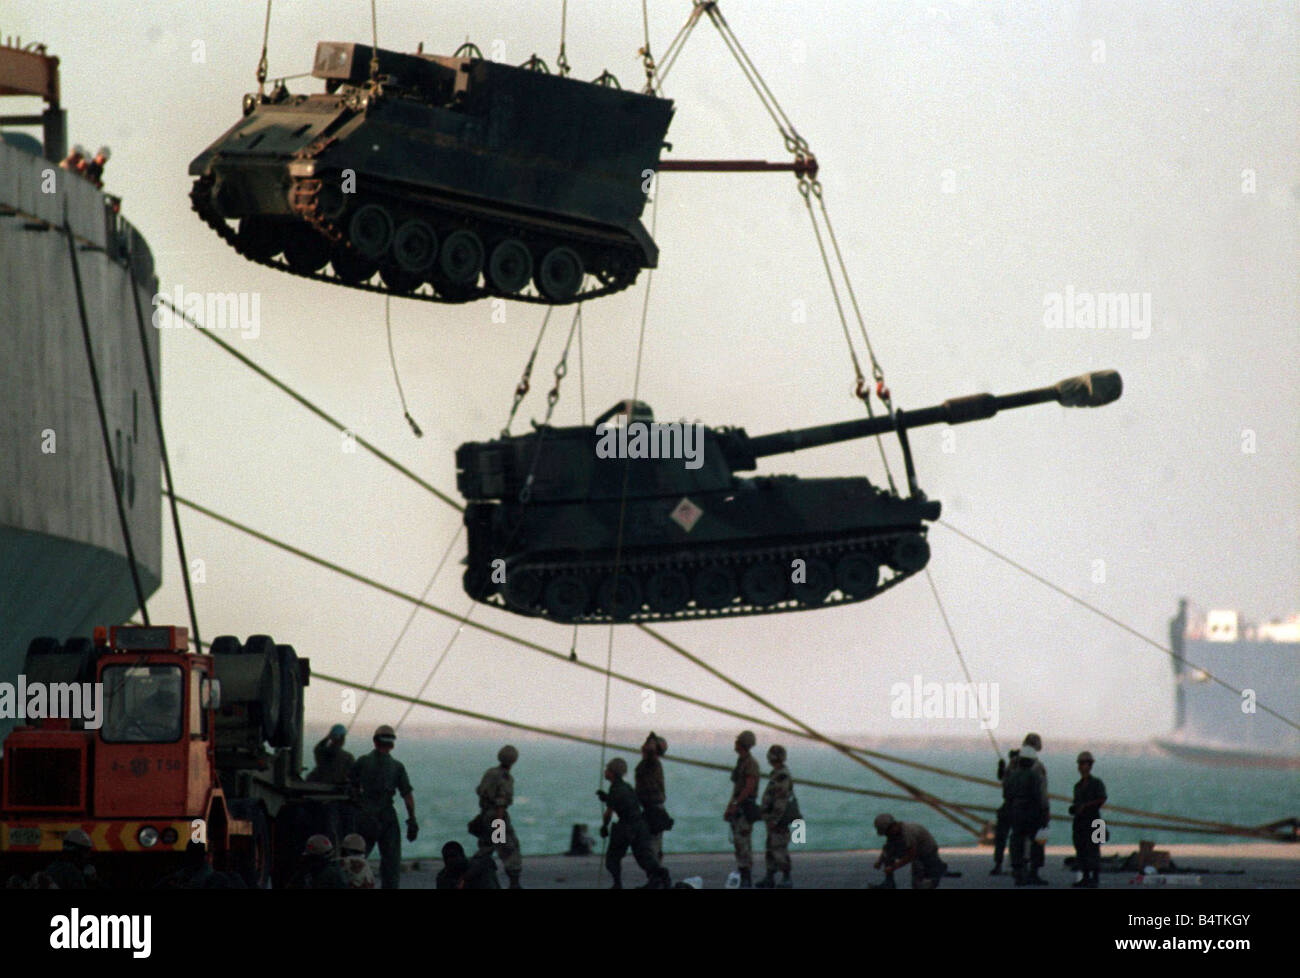 Gulf War Operation Desert Storm Tanks and mobile guns are unloaded from transport ships October 1990 - Stock Image